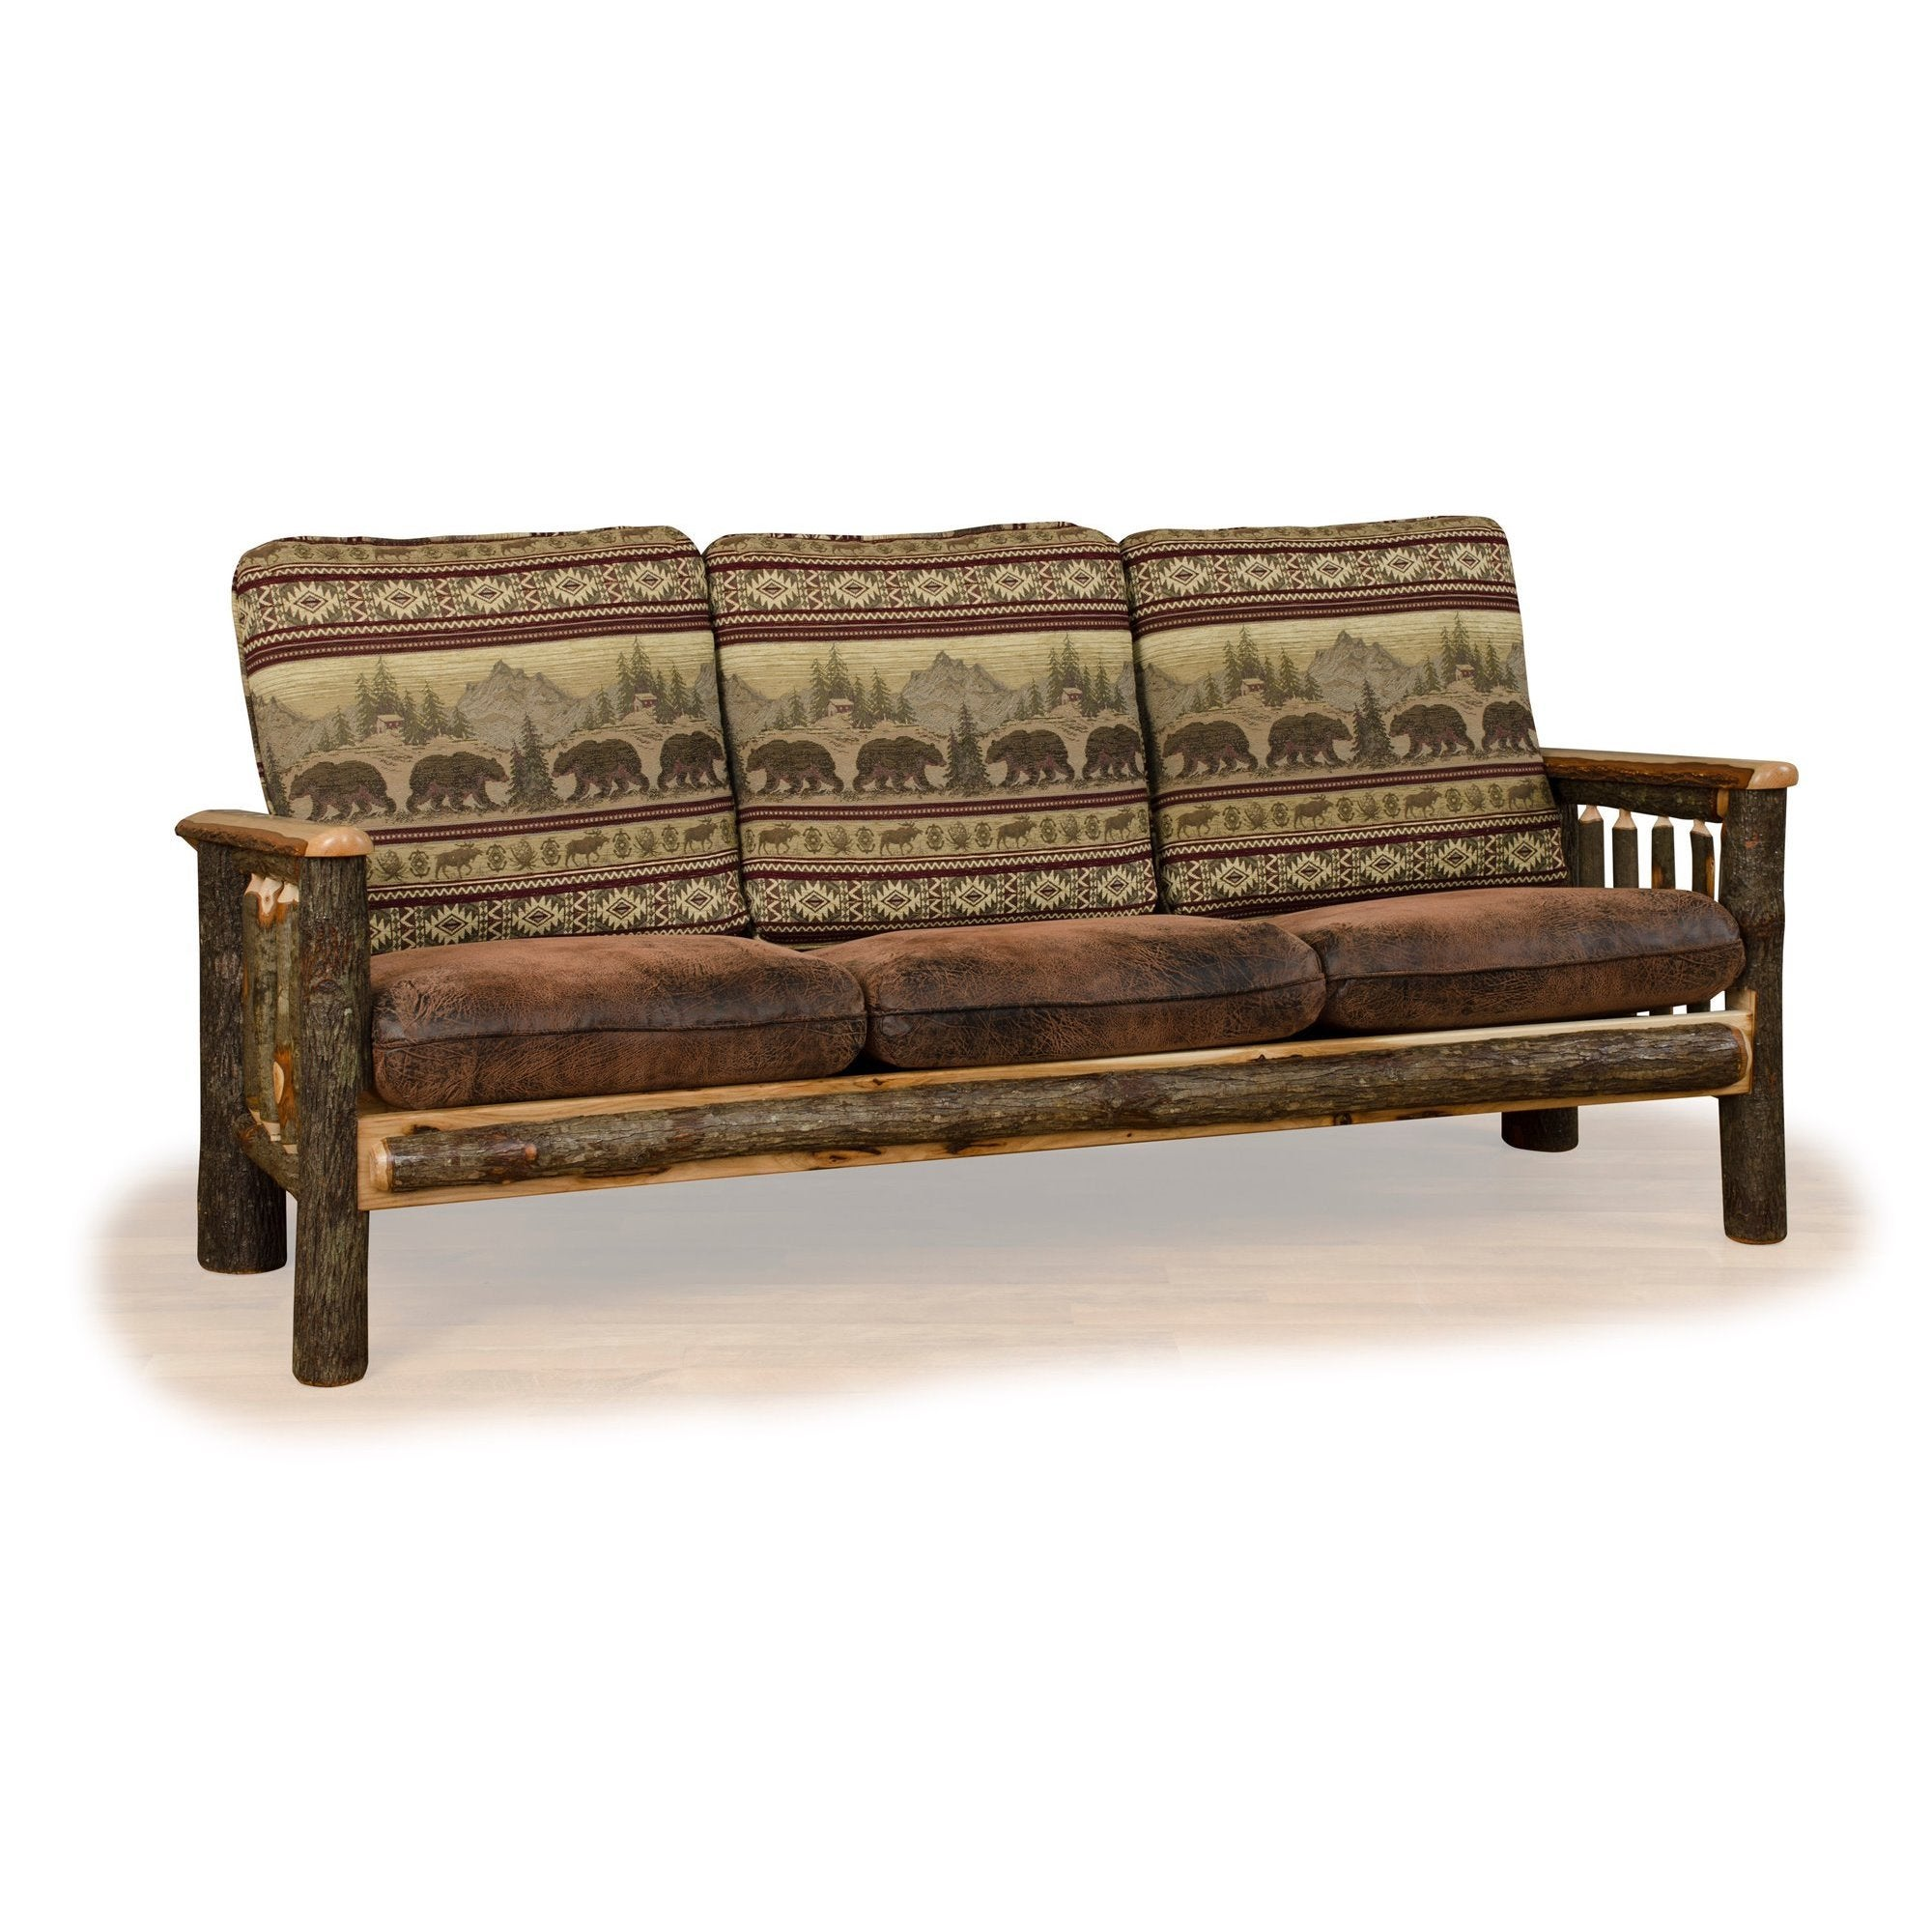 492b76fe2e Shop Rustic Hickory Sofa Bear Mt. Fabric Amish Made USA - On Sale - Free  Shipping Today - Overstock - 10618342